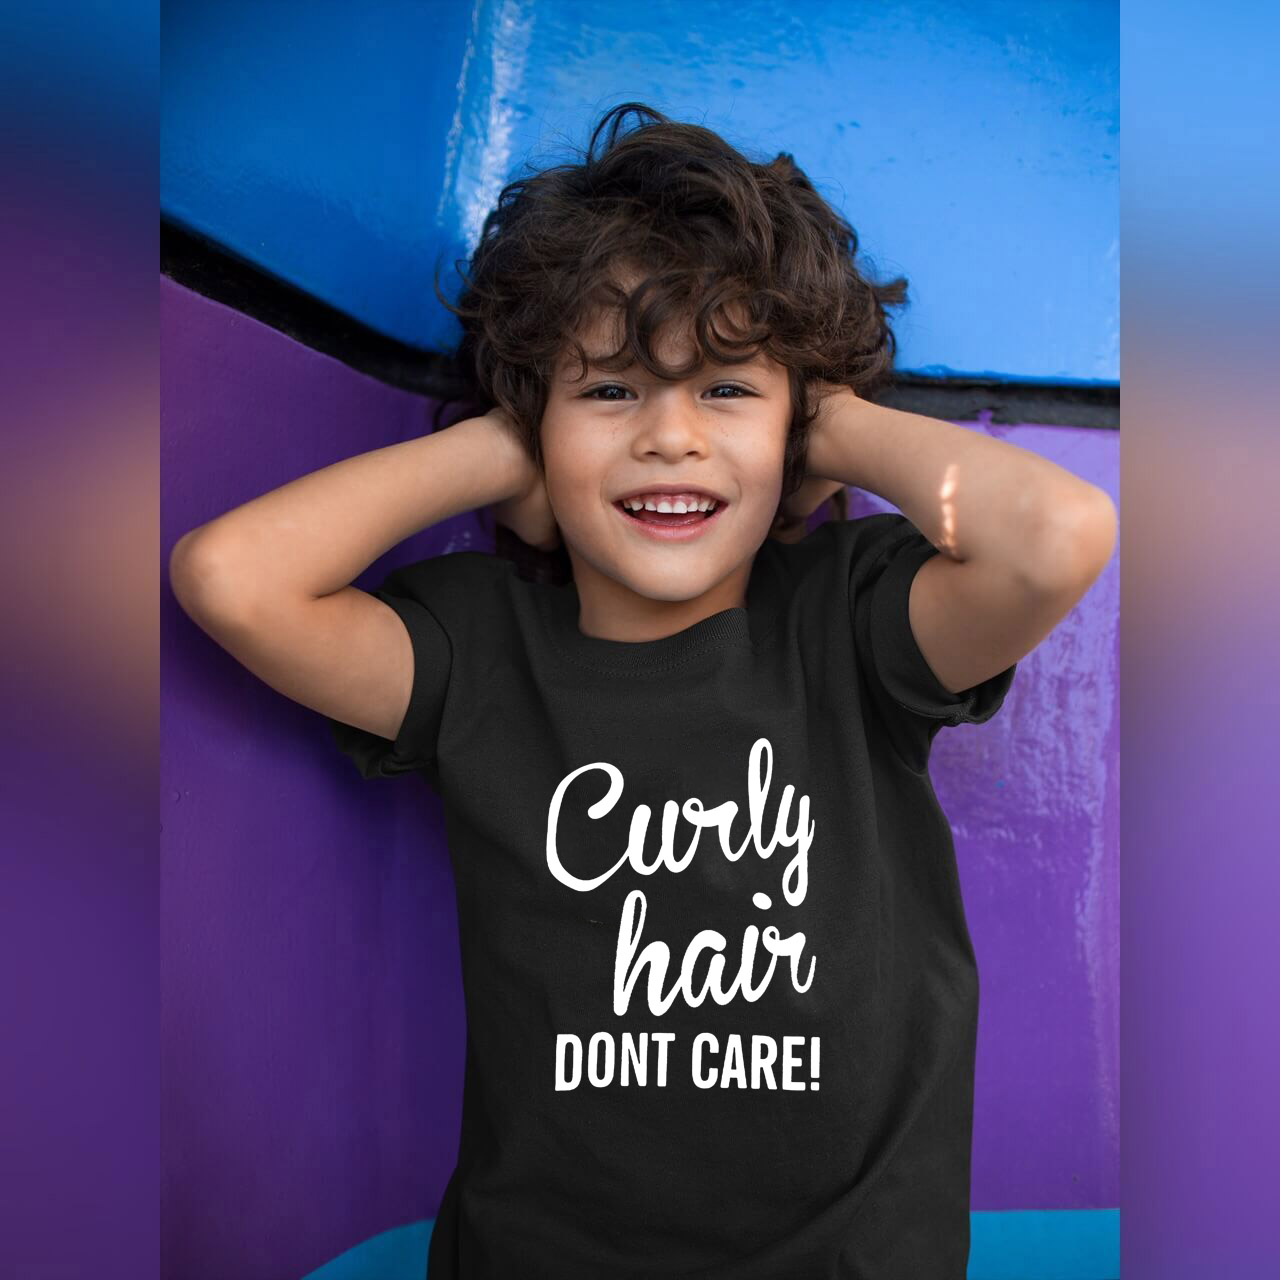 Shirt Curly-Hair Don't-Care Streetwear Funny Toddler Girl Boys Kids Children Short-Sleeve